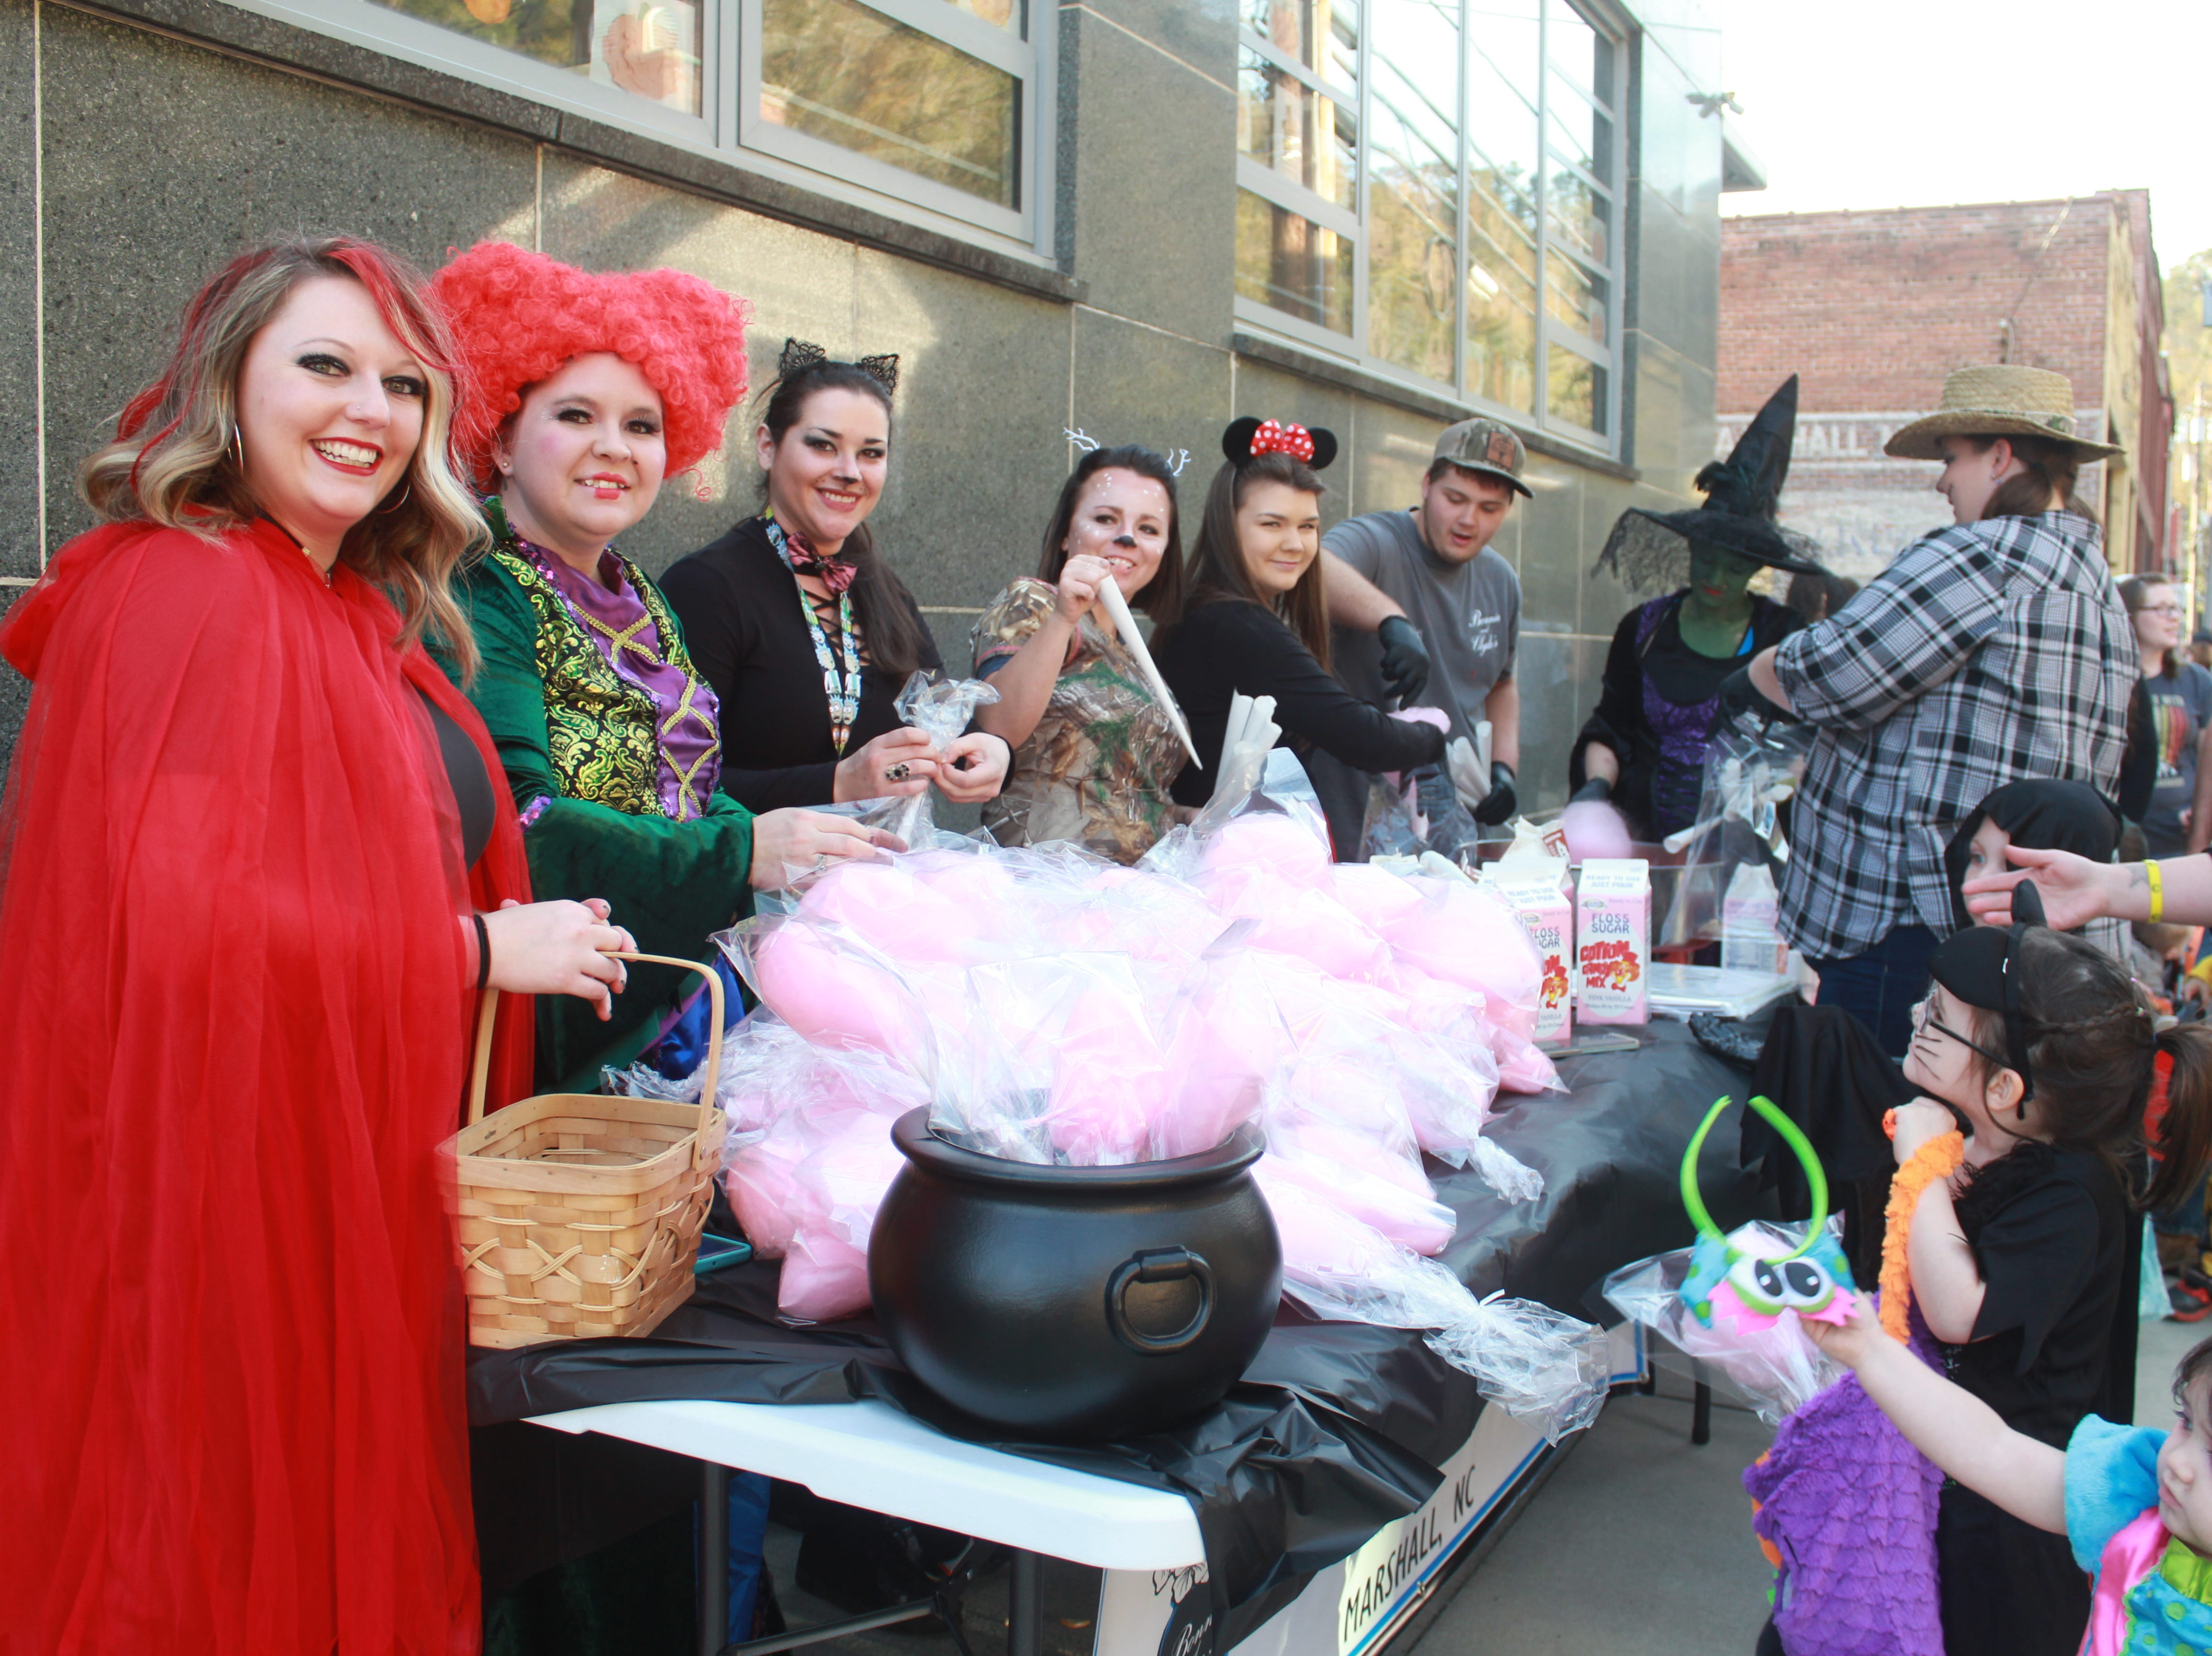 The staff of Marshall restaurant Bonnie & Clyde's and salon Sarah's Cutting Edge proved a popular stop with freshly made cotton candy.